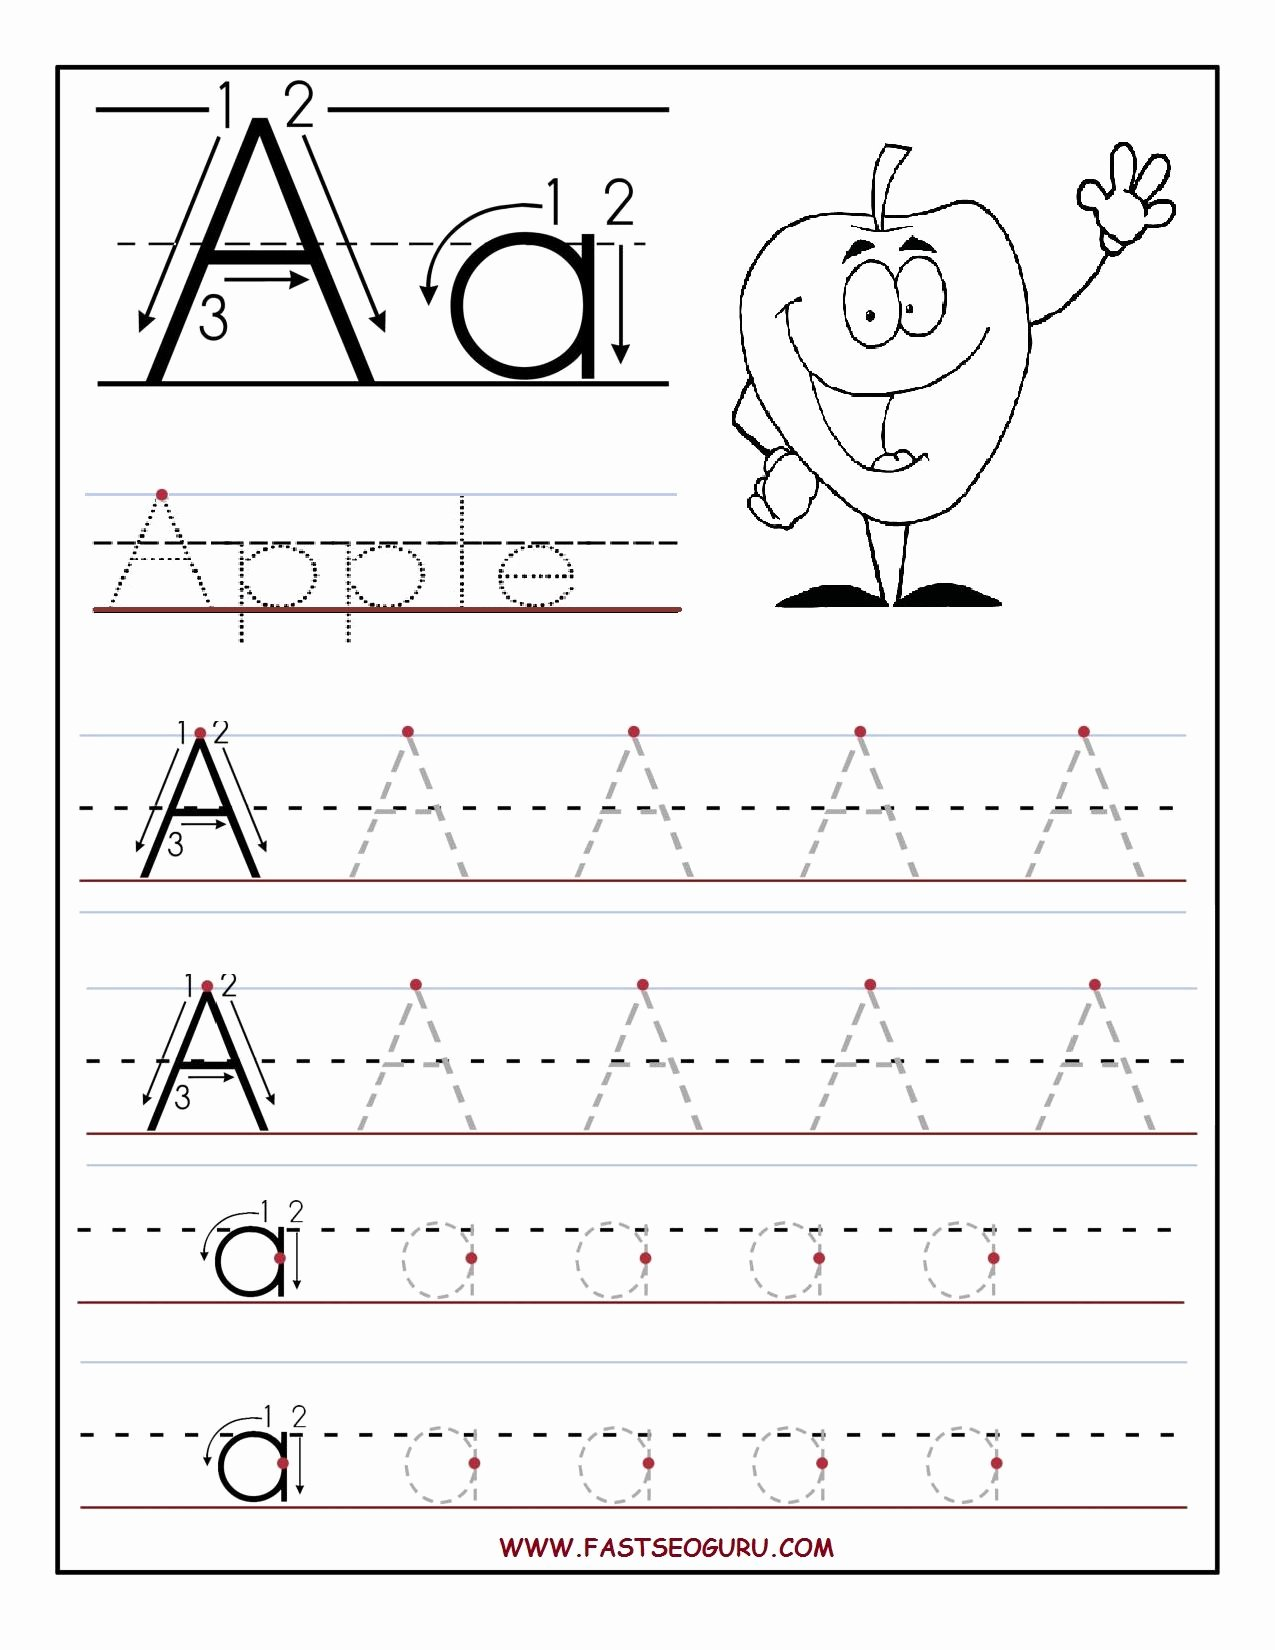 Printable Alphabet Tracing Worksheets for Preschoolers New Free Printable Activities for Preschoolers